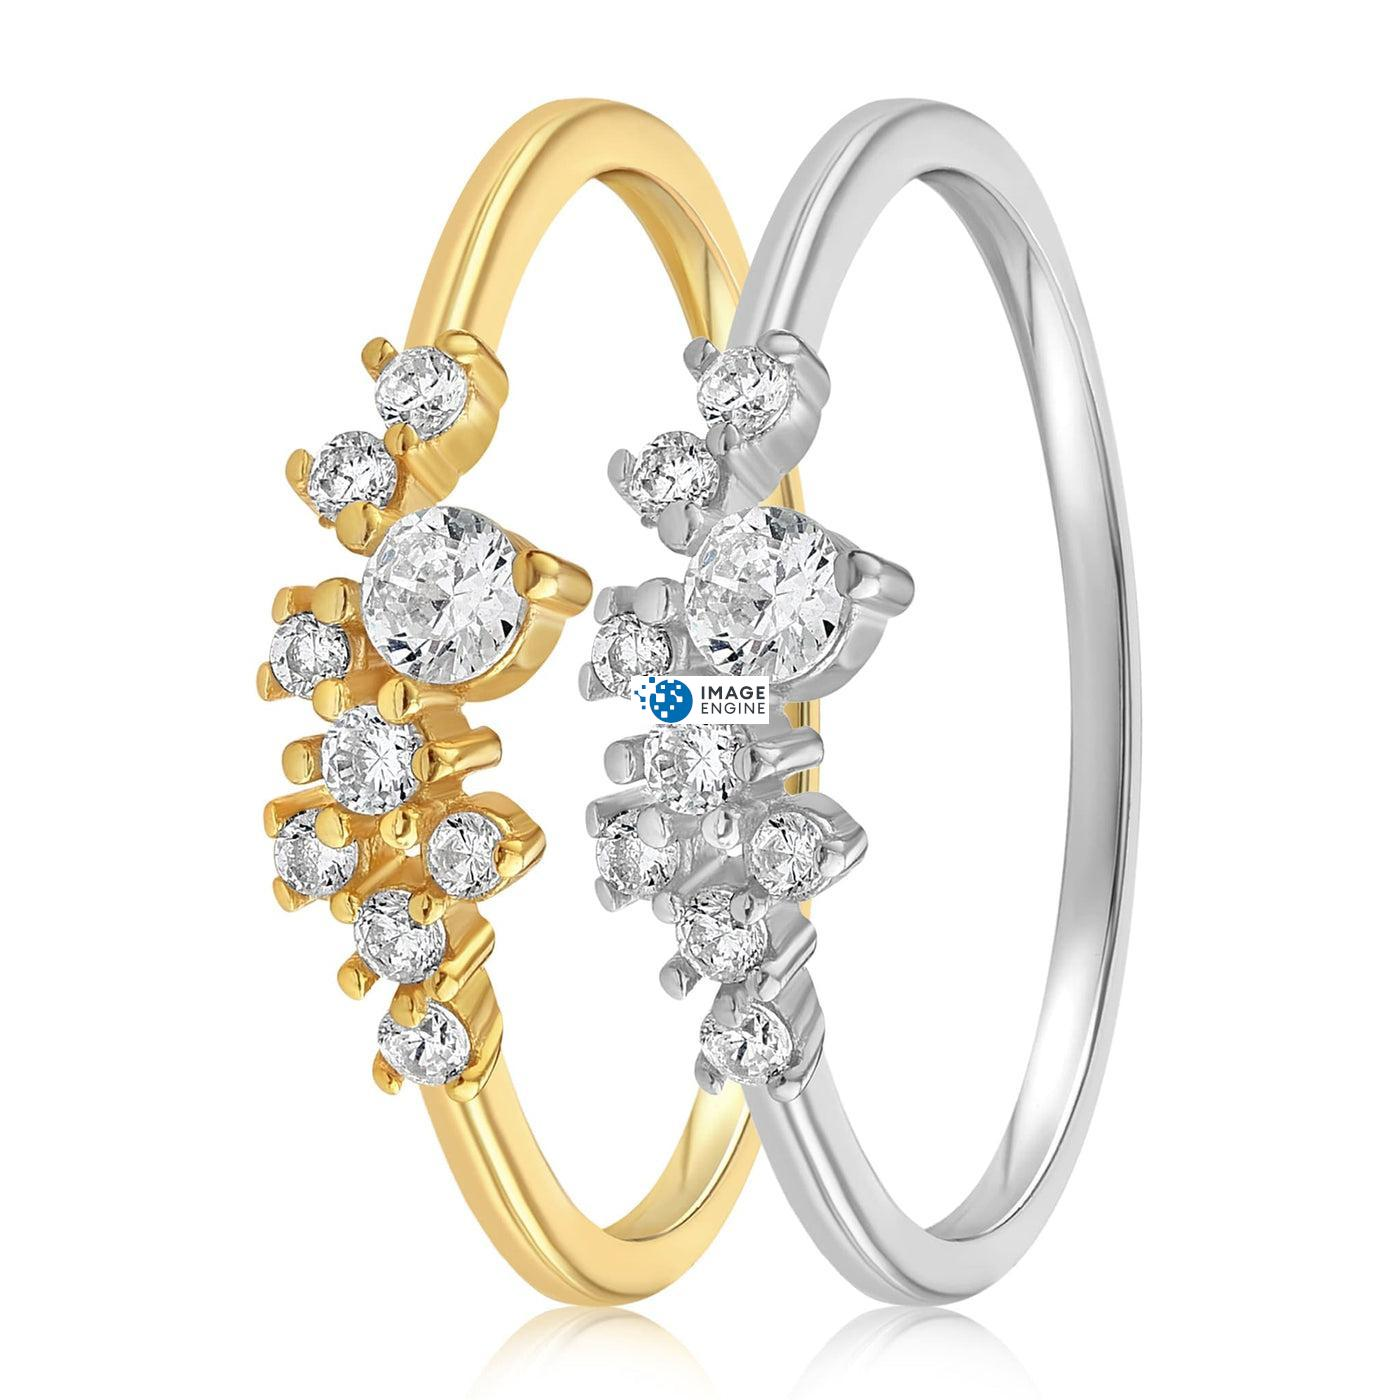 Sasha Sparkle Ring - Front View Side by Side - 18K Yellow Gold Vermeil and 925 Sterling Silver